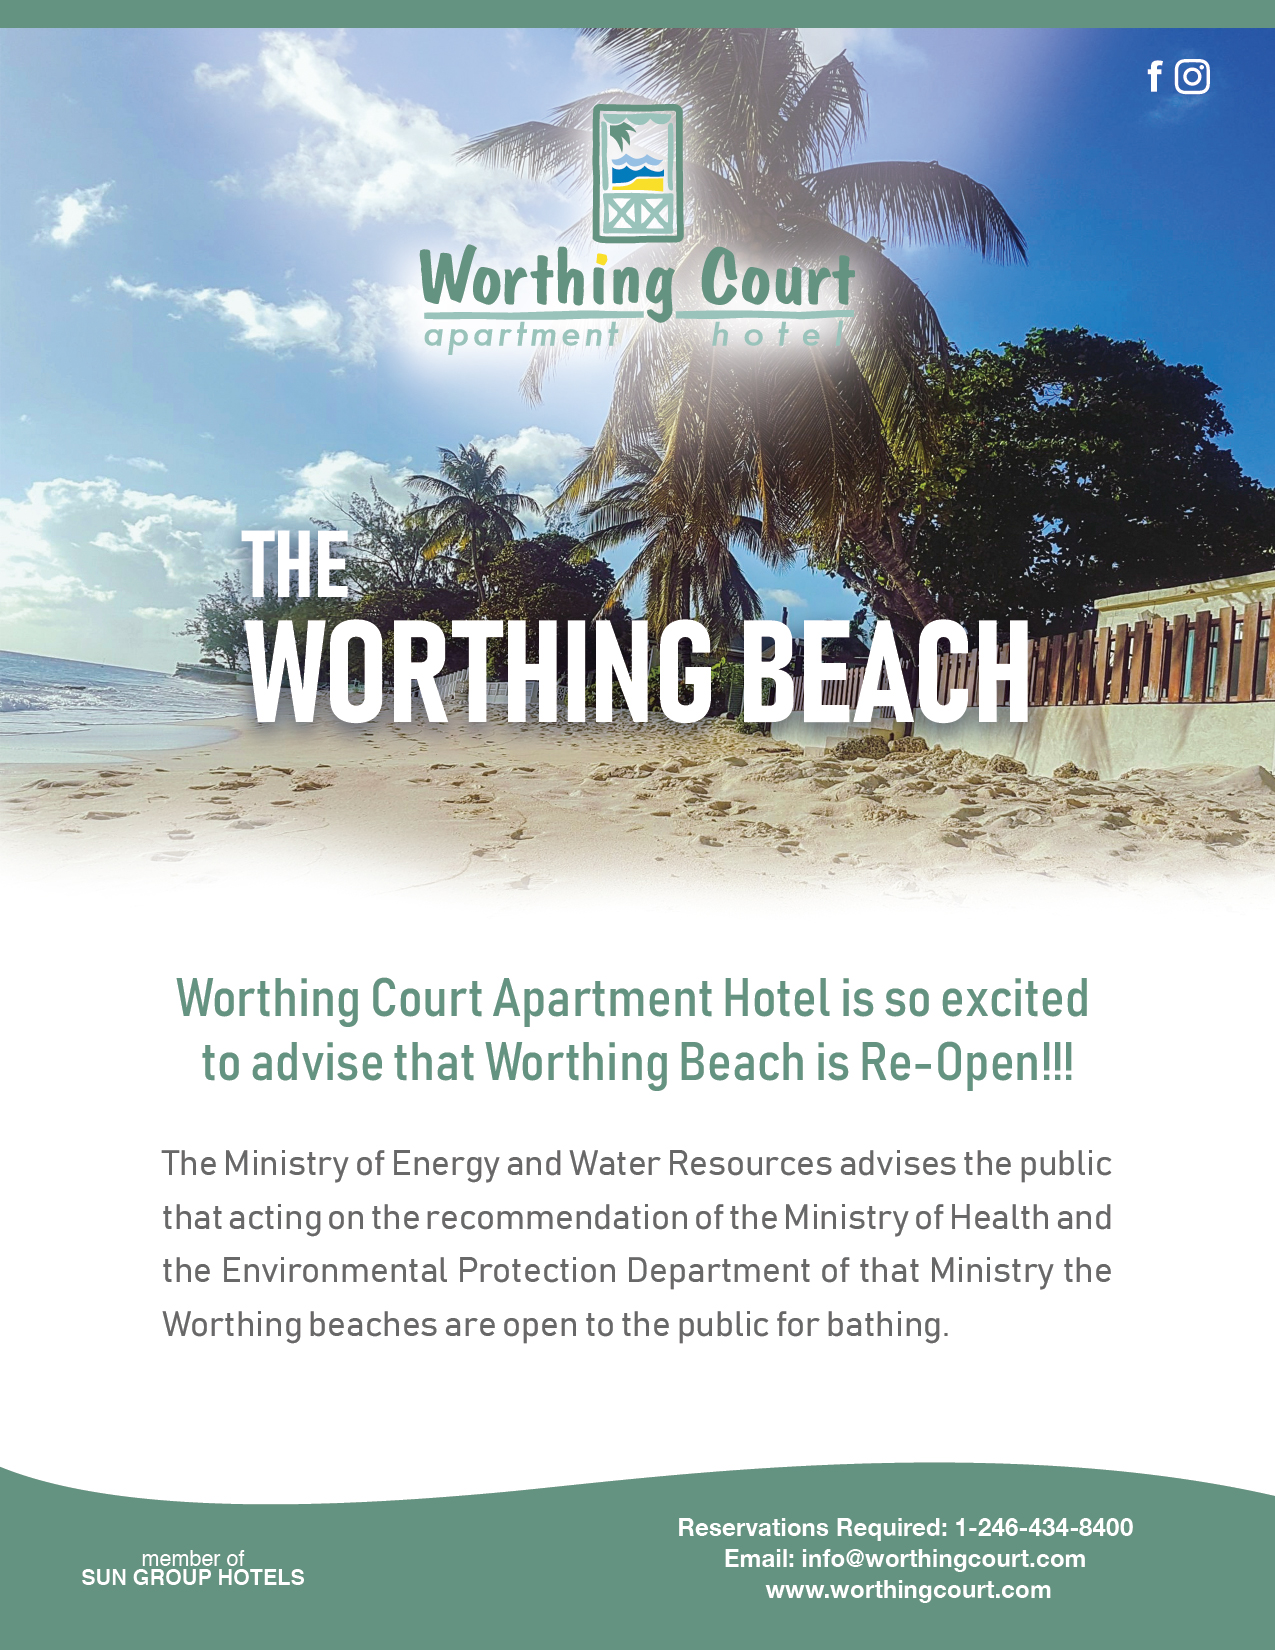 2019 WCH WORTHING BEACH RE OPENED POST 01